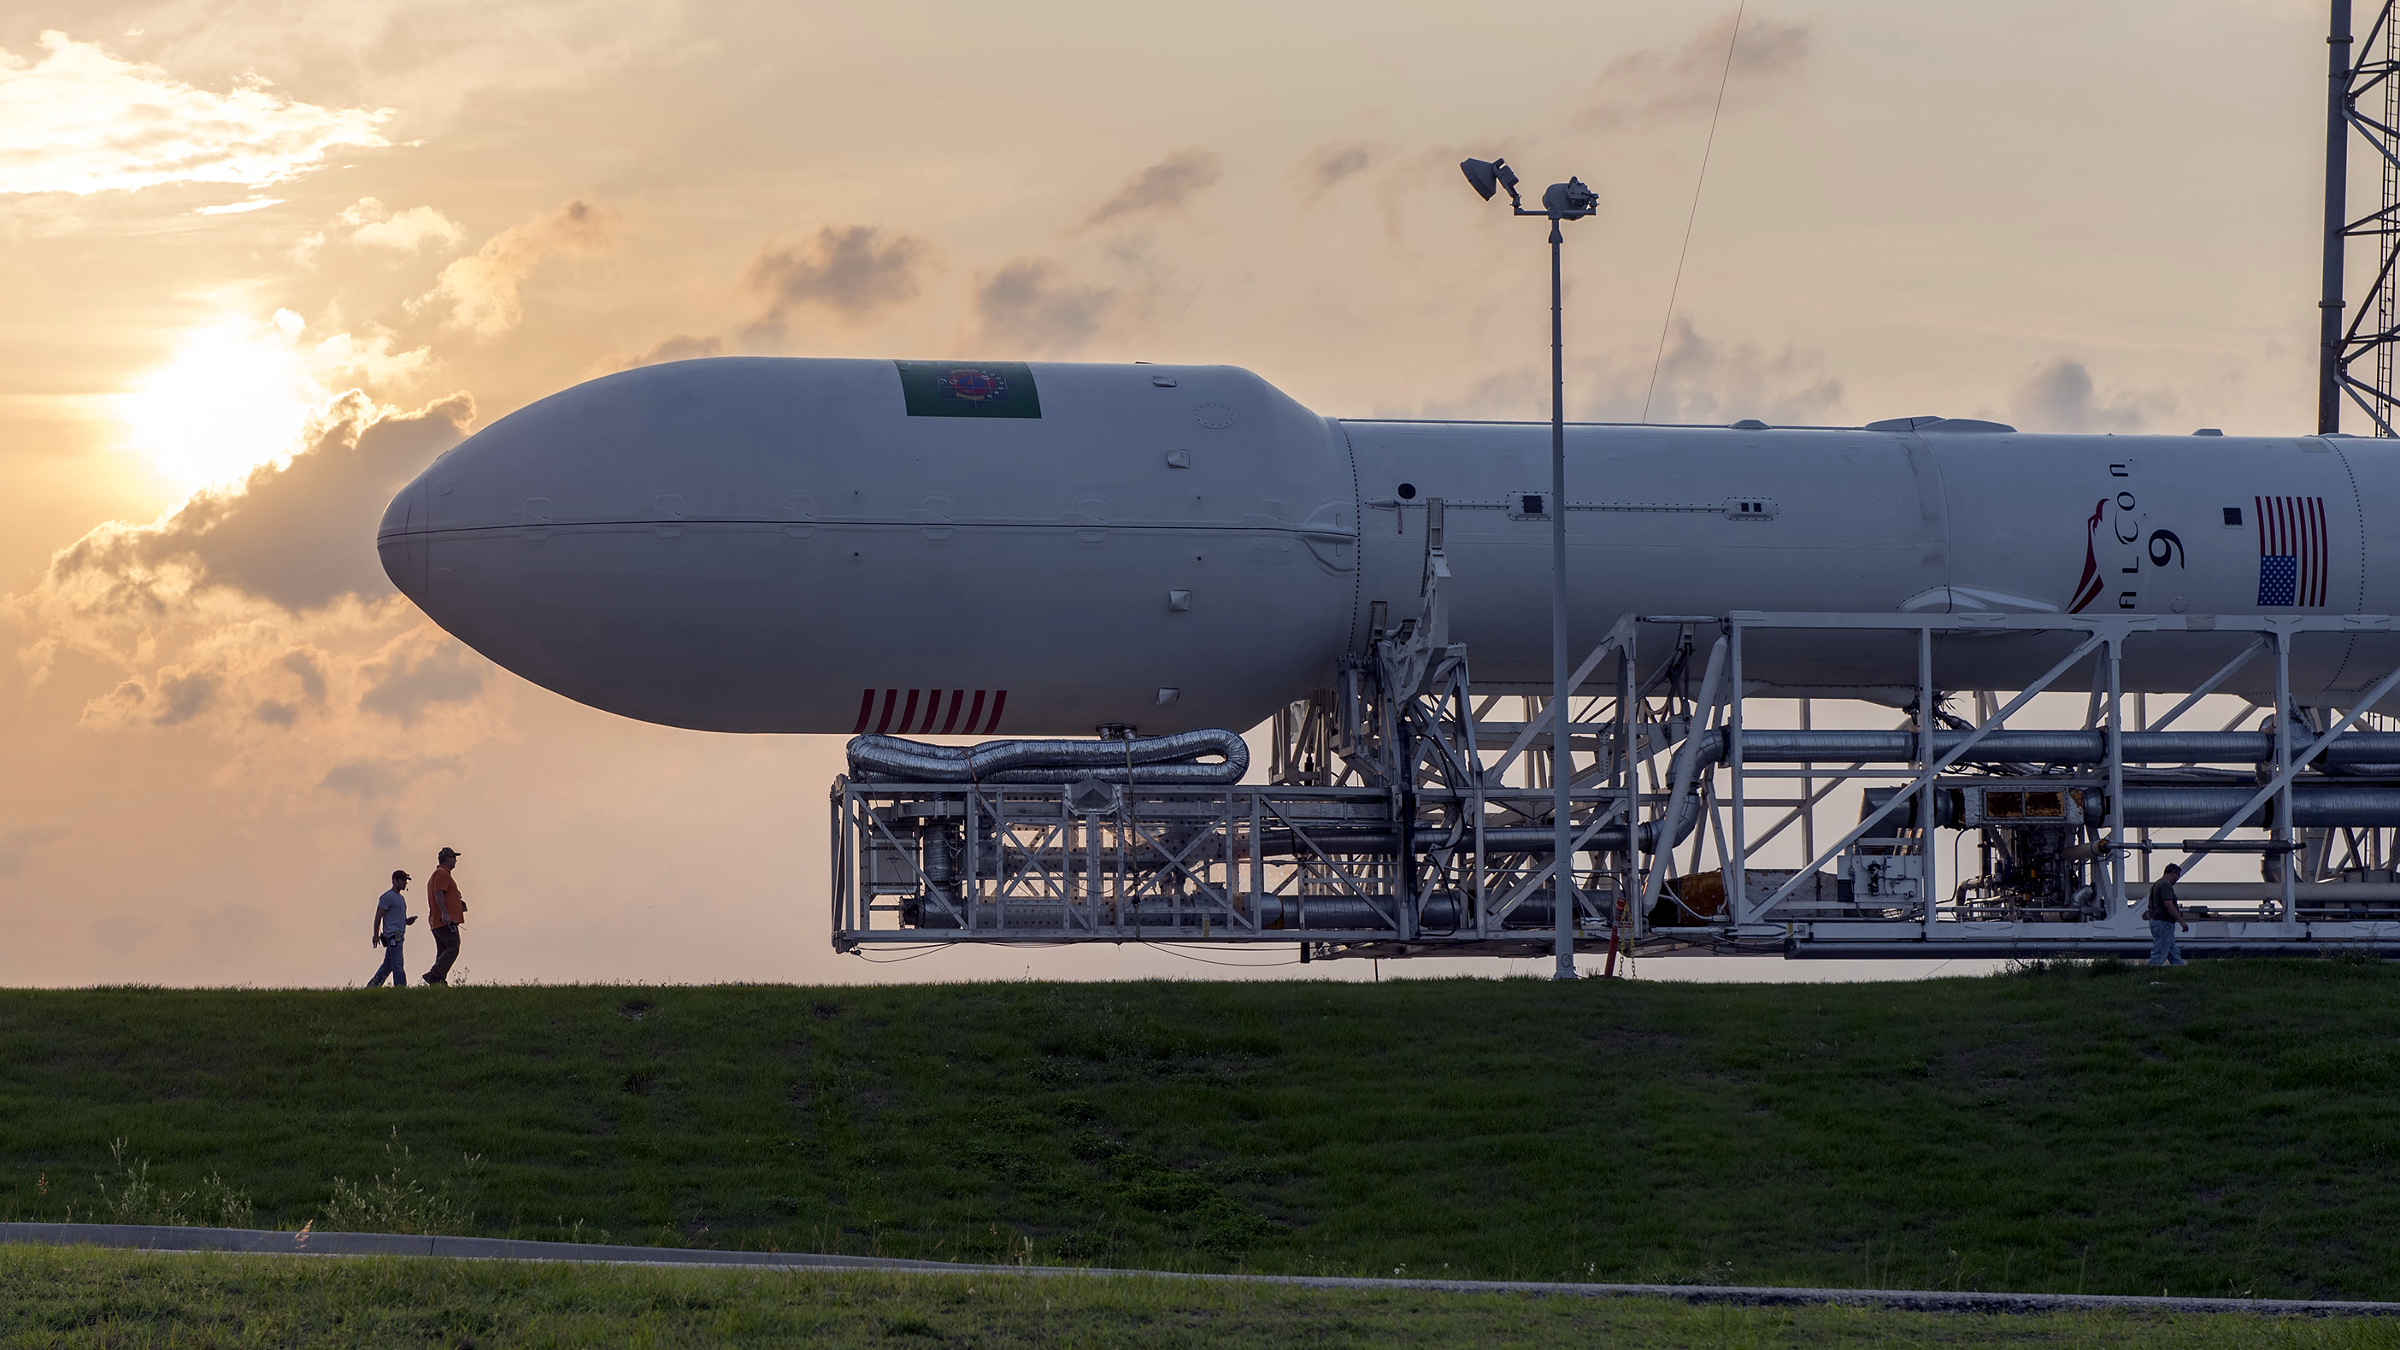 A SpaceX rocket is rolled out ahead of a 2014 launch.